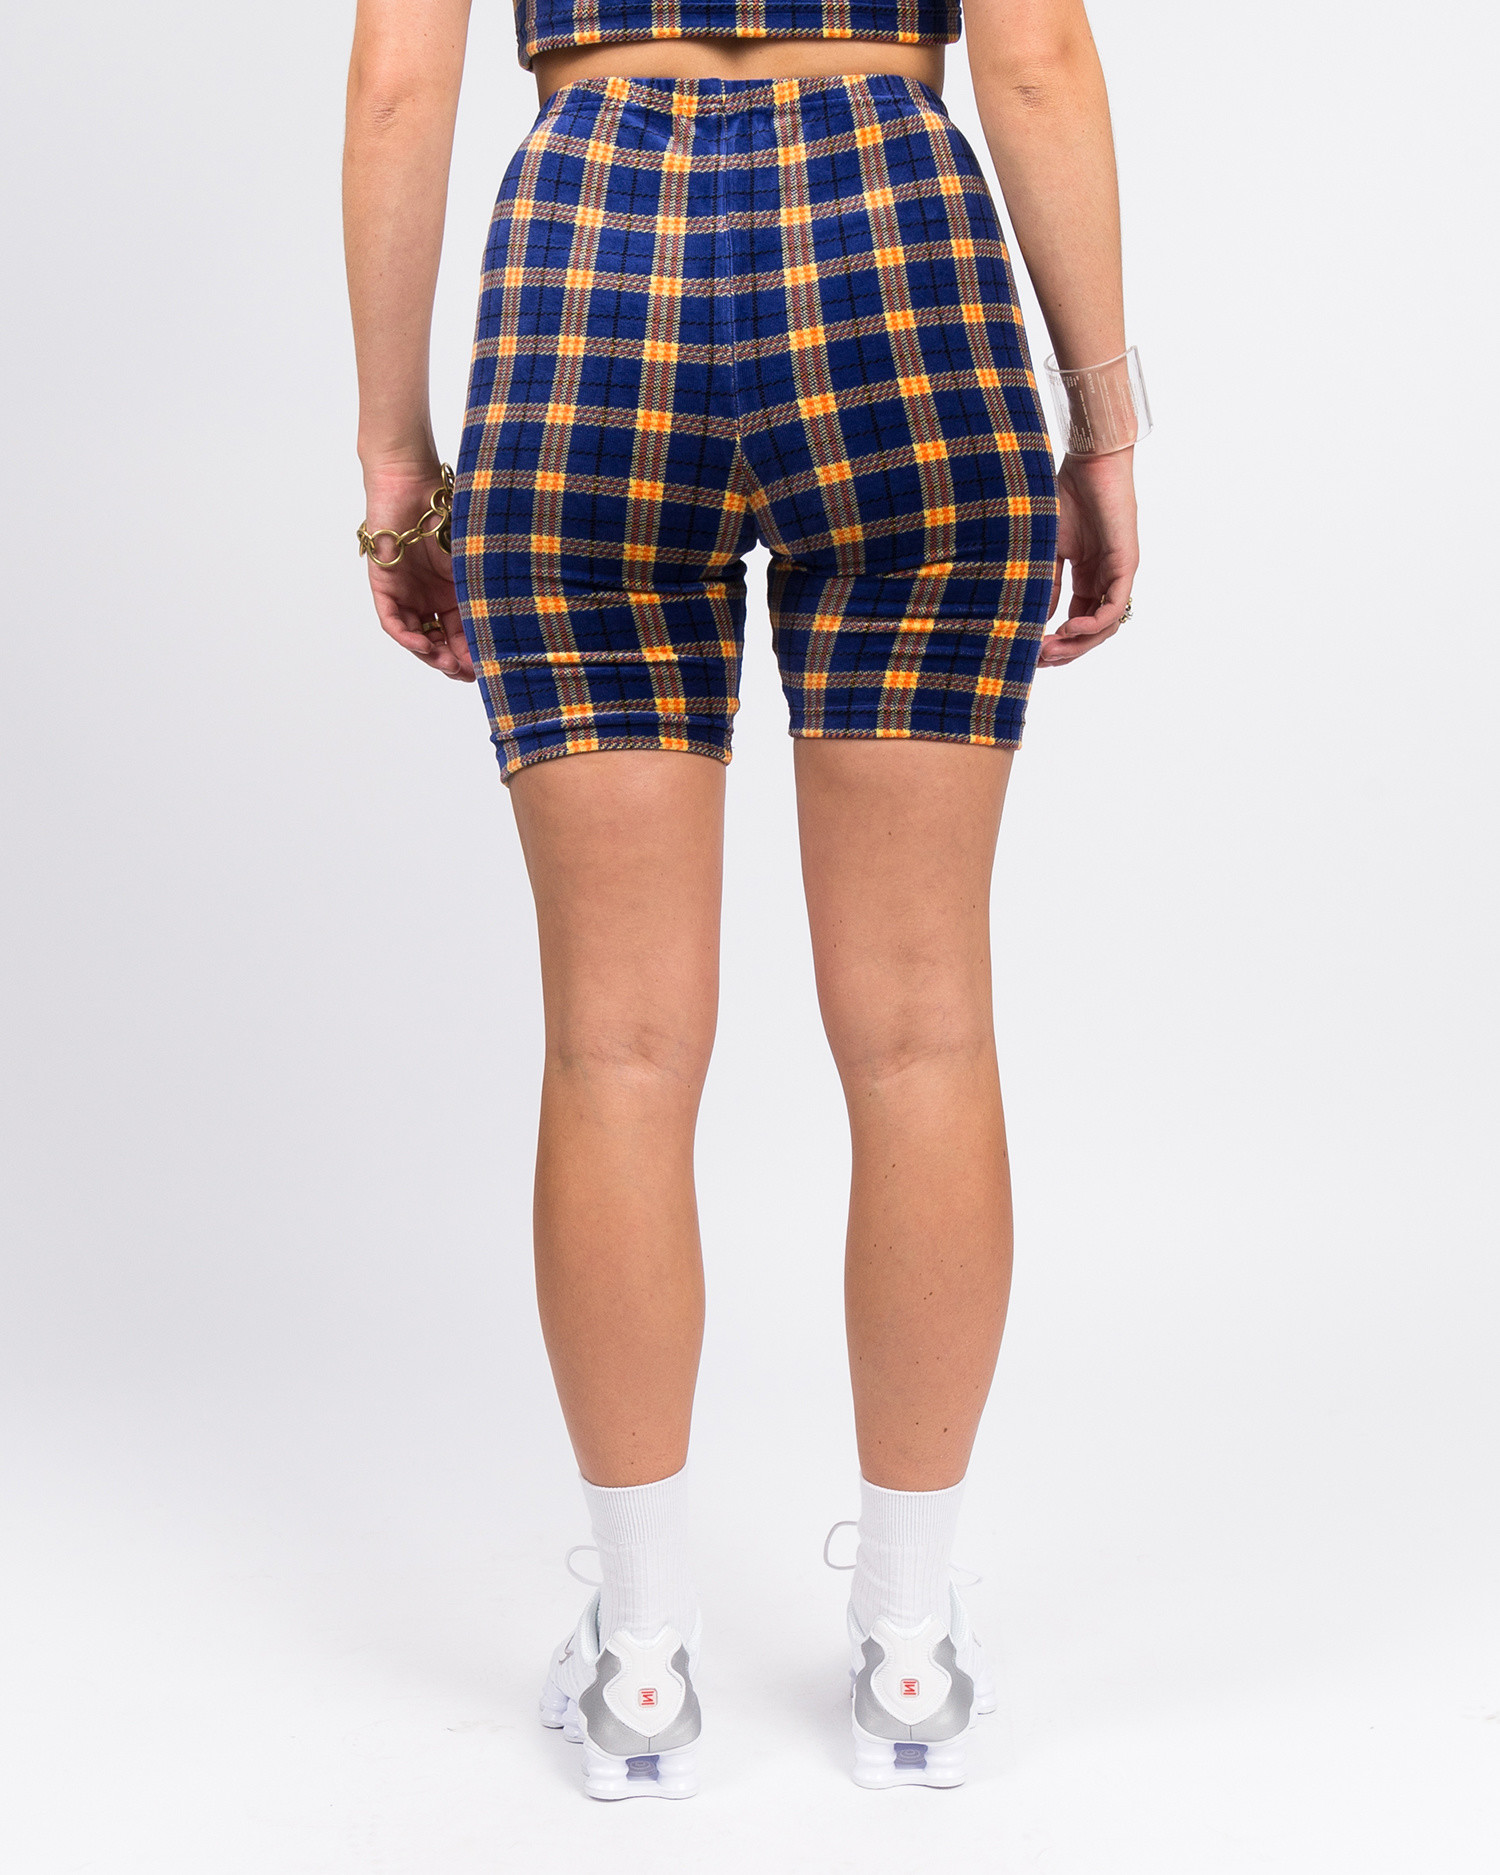 MadeMe Velour Plaid Biker Shorts